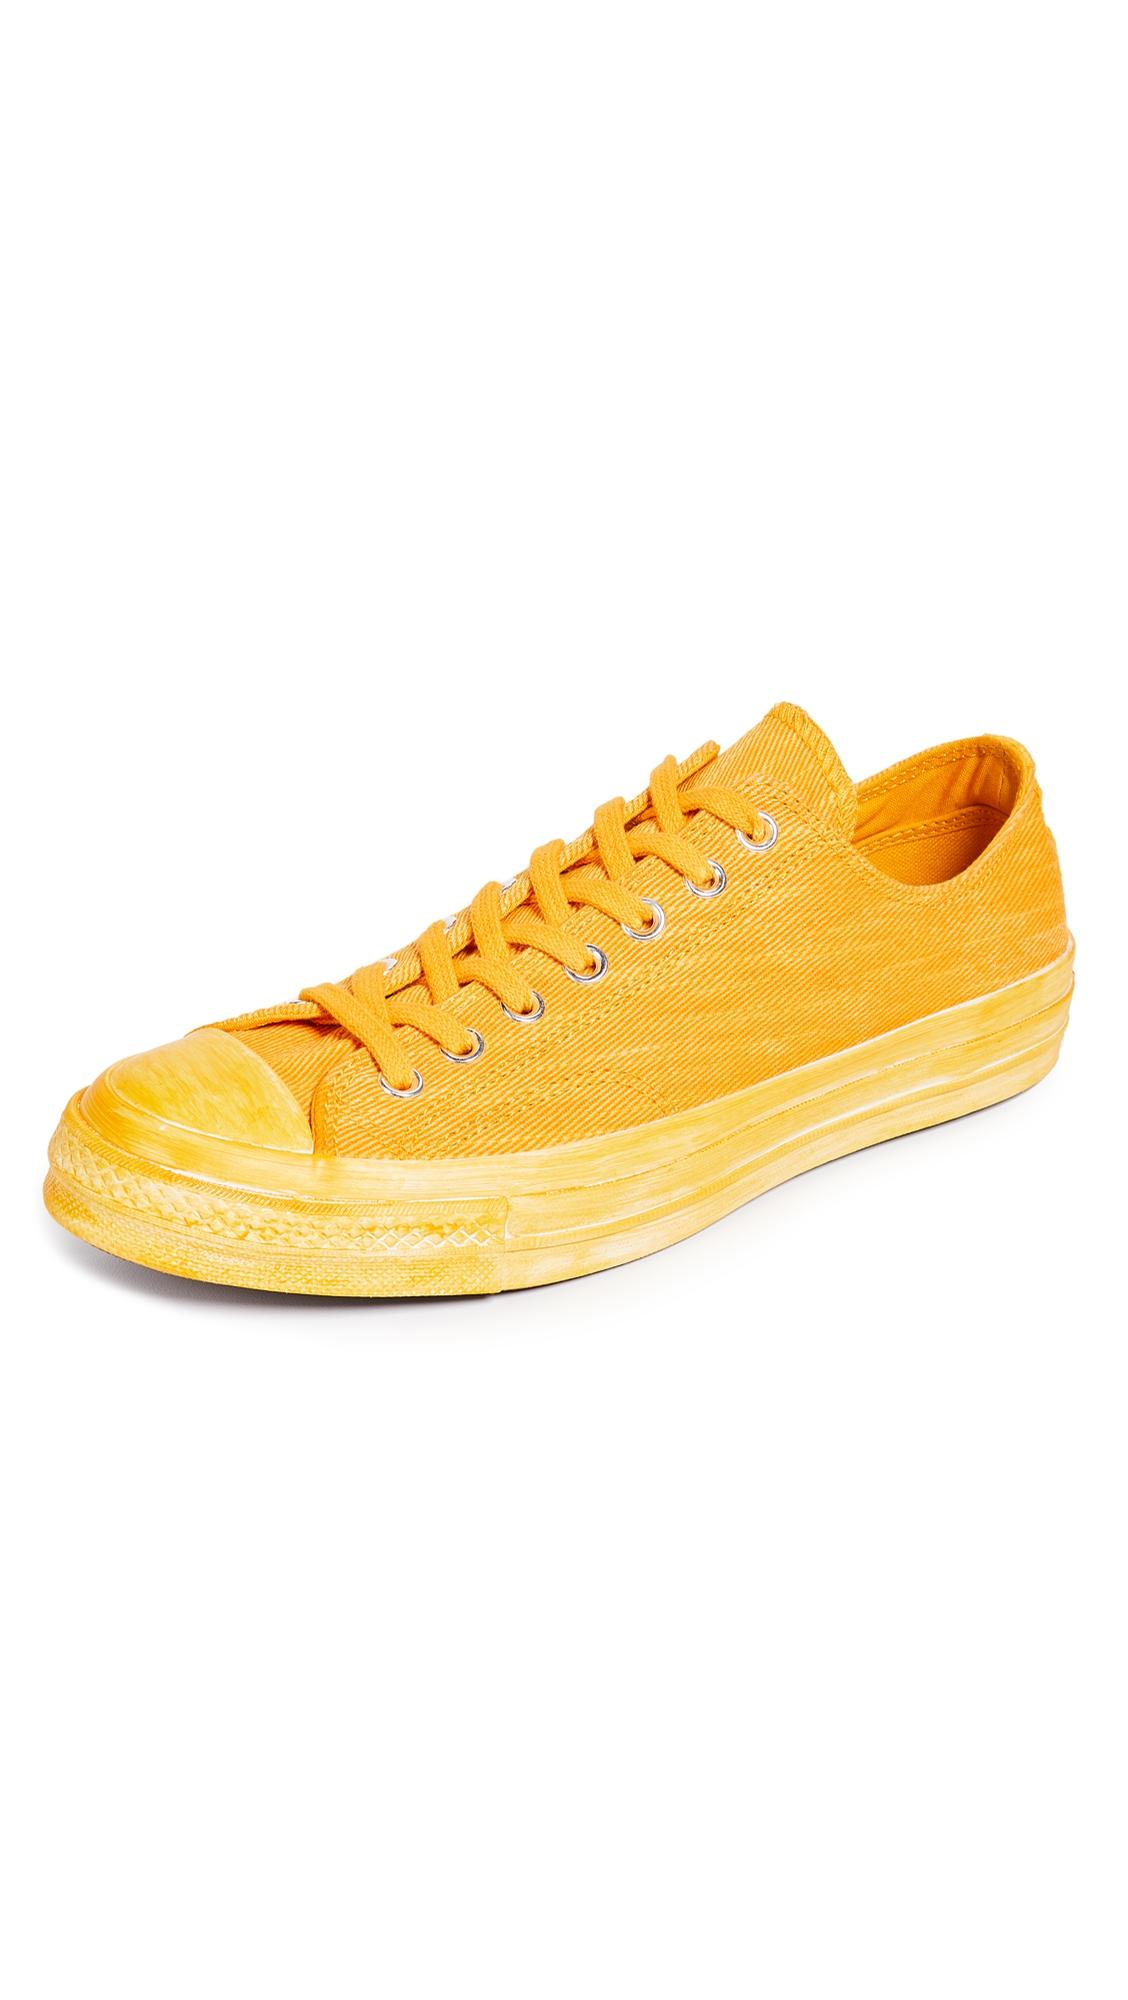 Converse Chuck Taylor All Star 70 Ox Sneakers In Yellow